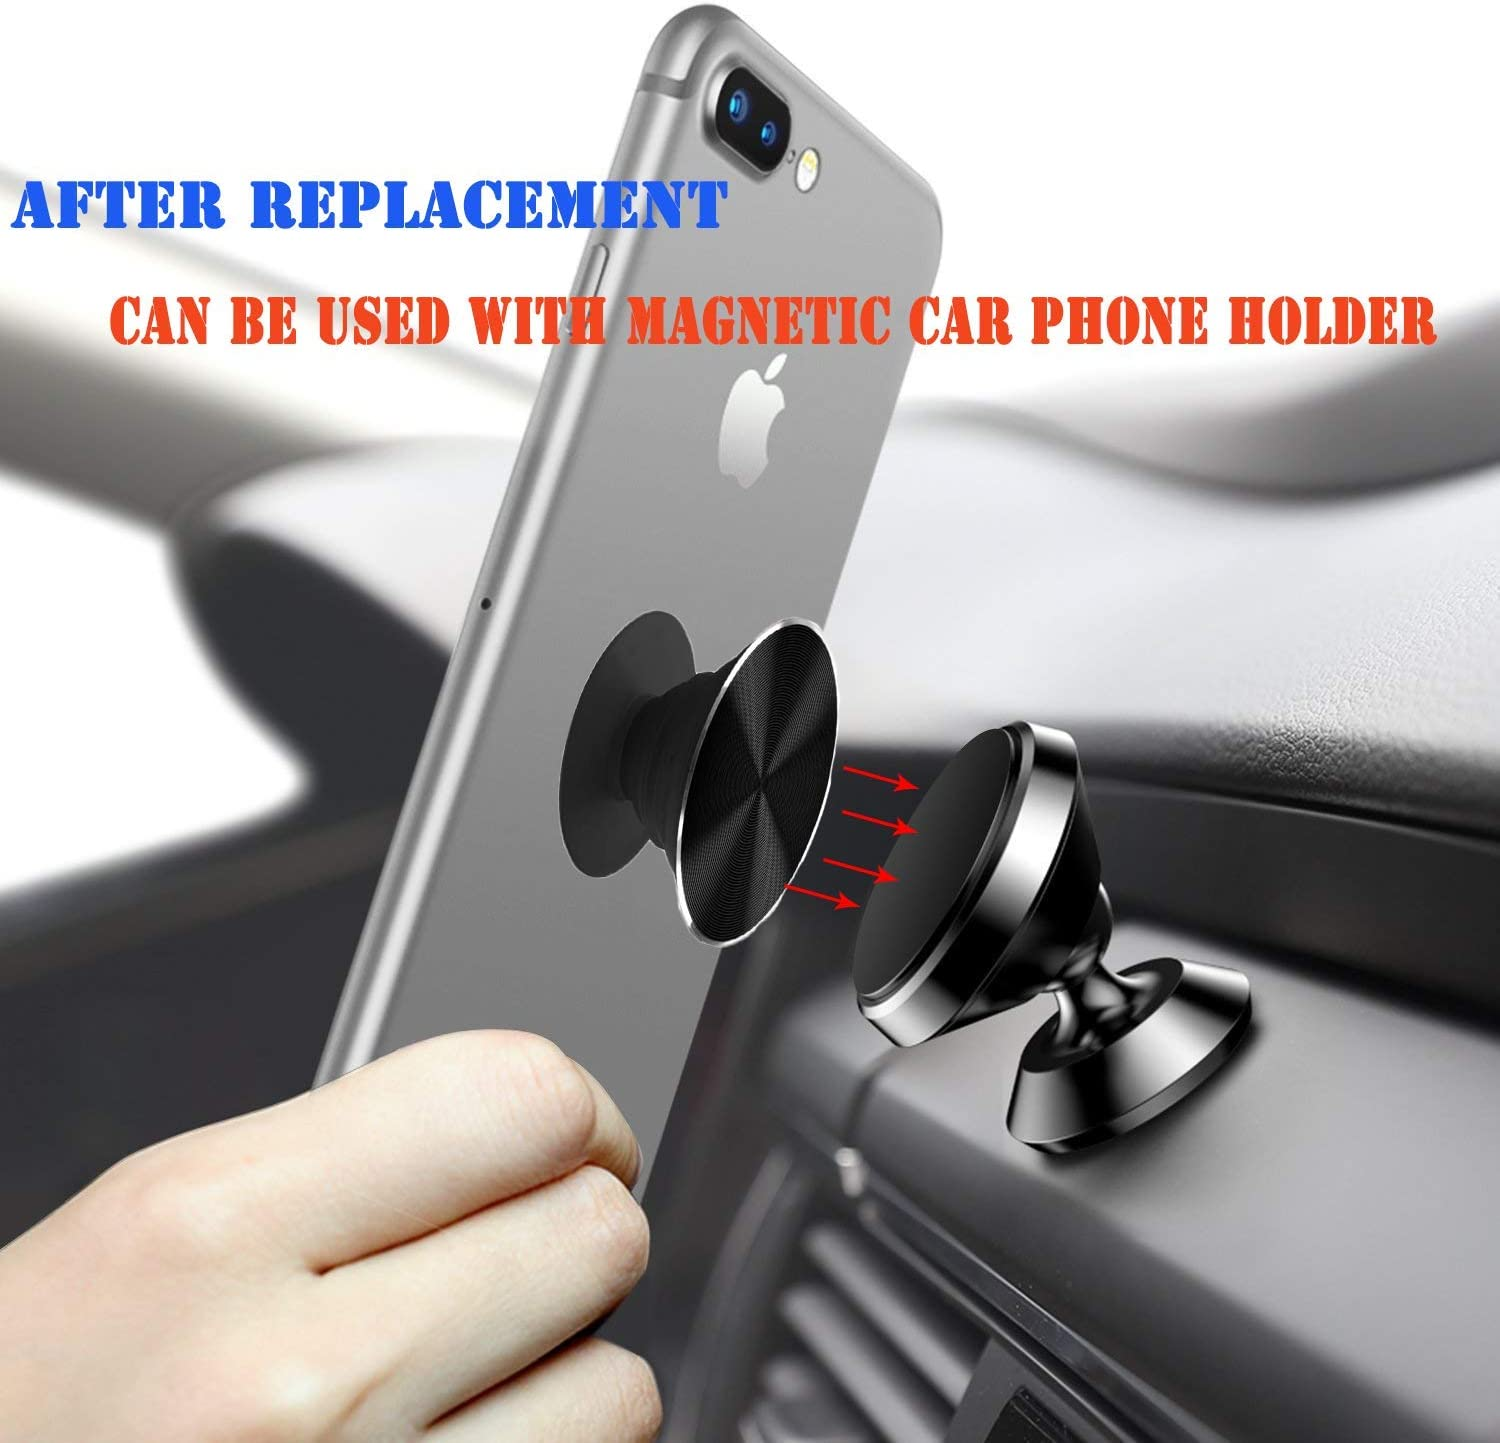 6pack Swappable Metal Covers Top for Pop Phone Grip /& Stand for Get a Different Design On Your Expanding Phone Grip Can be Used with Magnetic Car Mount